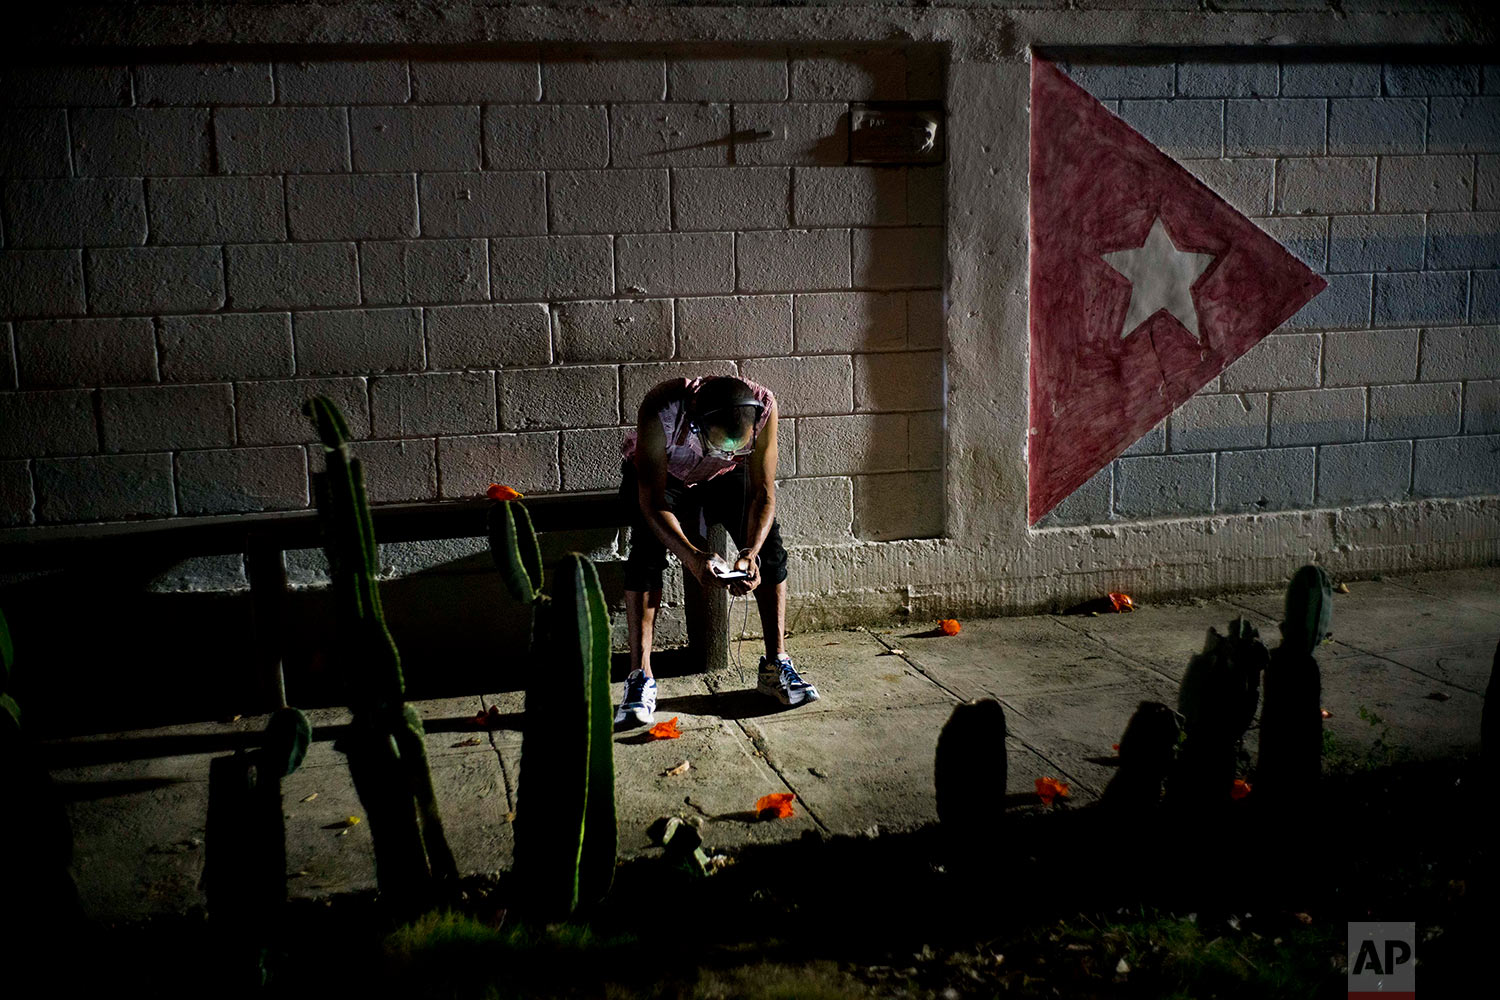 """In this April 14, 2018 photo, Lazaro Rodriguez, 42, connects his cell phone at a public internet hot spot at night in Havana, Cuba. Lazaro, who studied baking and is currently working in maintenance, said he's seen very positive changes in the economy in recent years, and would like to see development continue. """"The generation that comes after me will have much more. I lived 'the special period' in the 90s, and the country is still blocked,"""" referring to the U.S. embargo. (AP Photo/Ramon Espinosa)"""